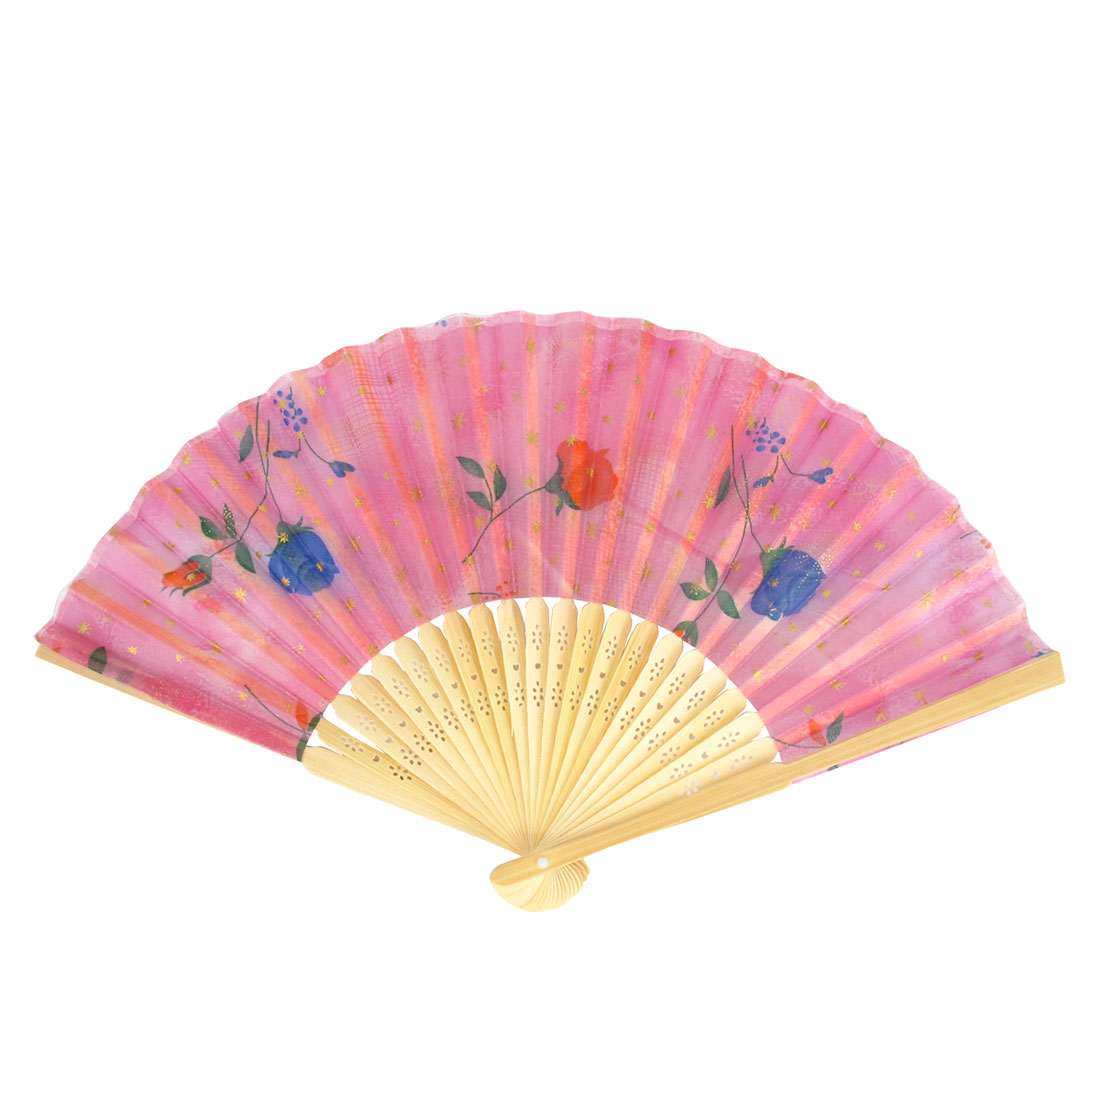 Bamboo Ribs Hollow Out Frame Flower Print Foldable Hand Fan Party Gift